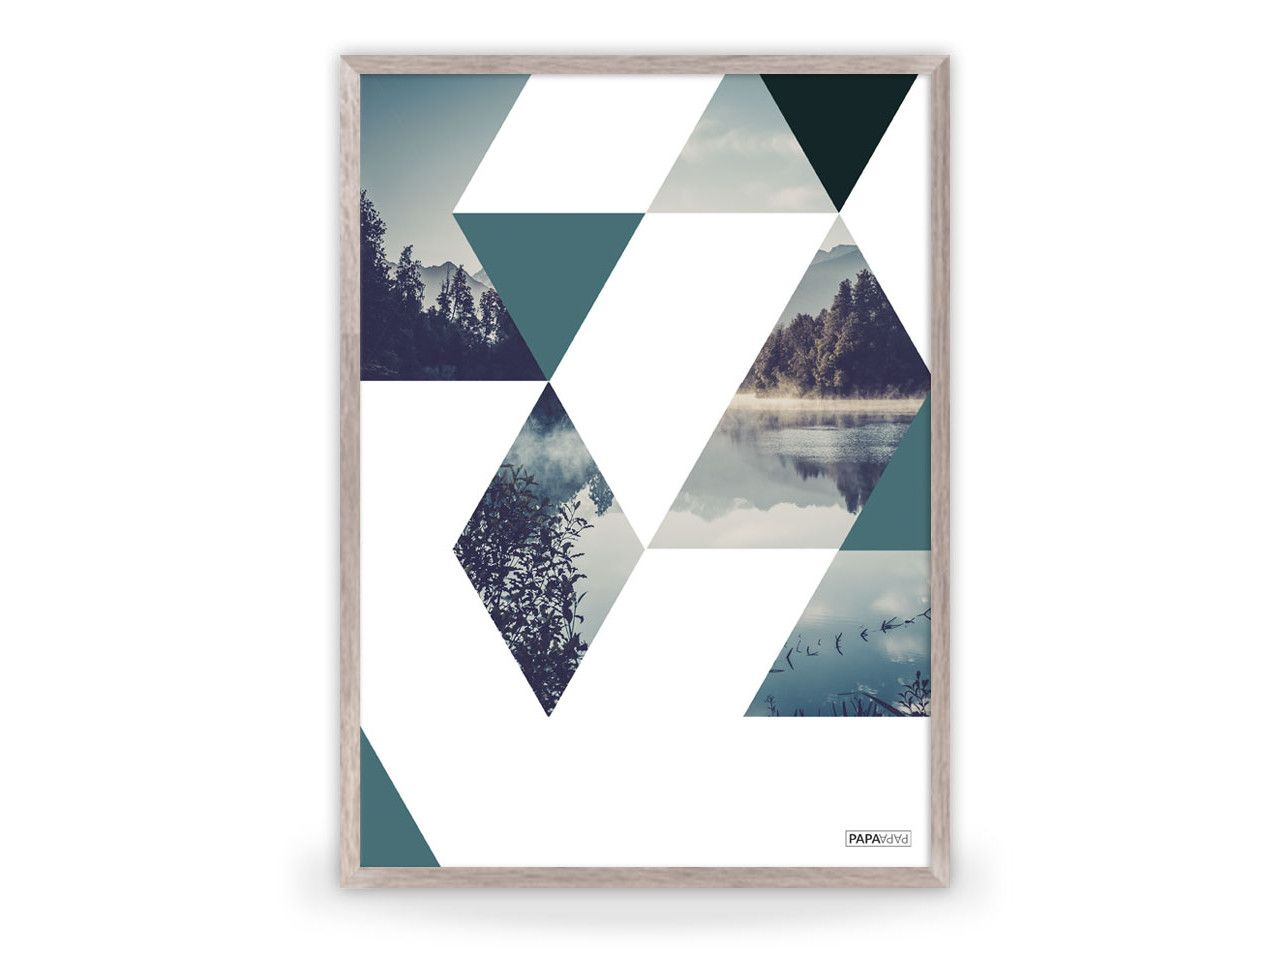 Plakat Triangles Thoughts Plakater Triangles Billeder